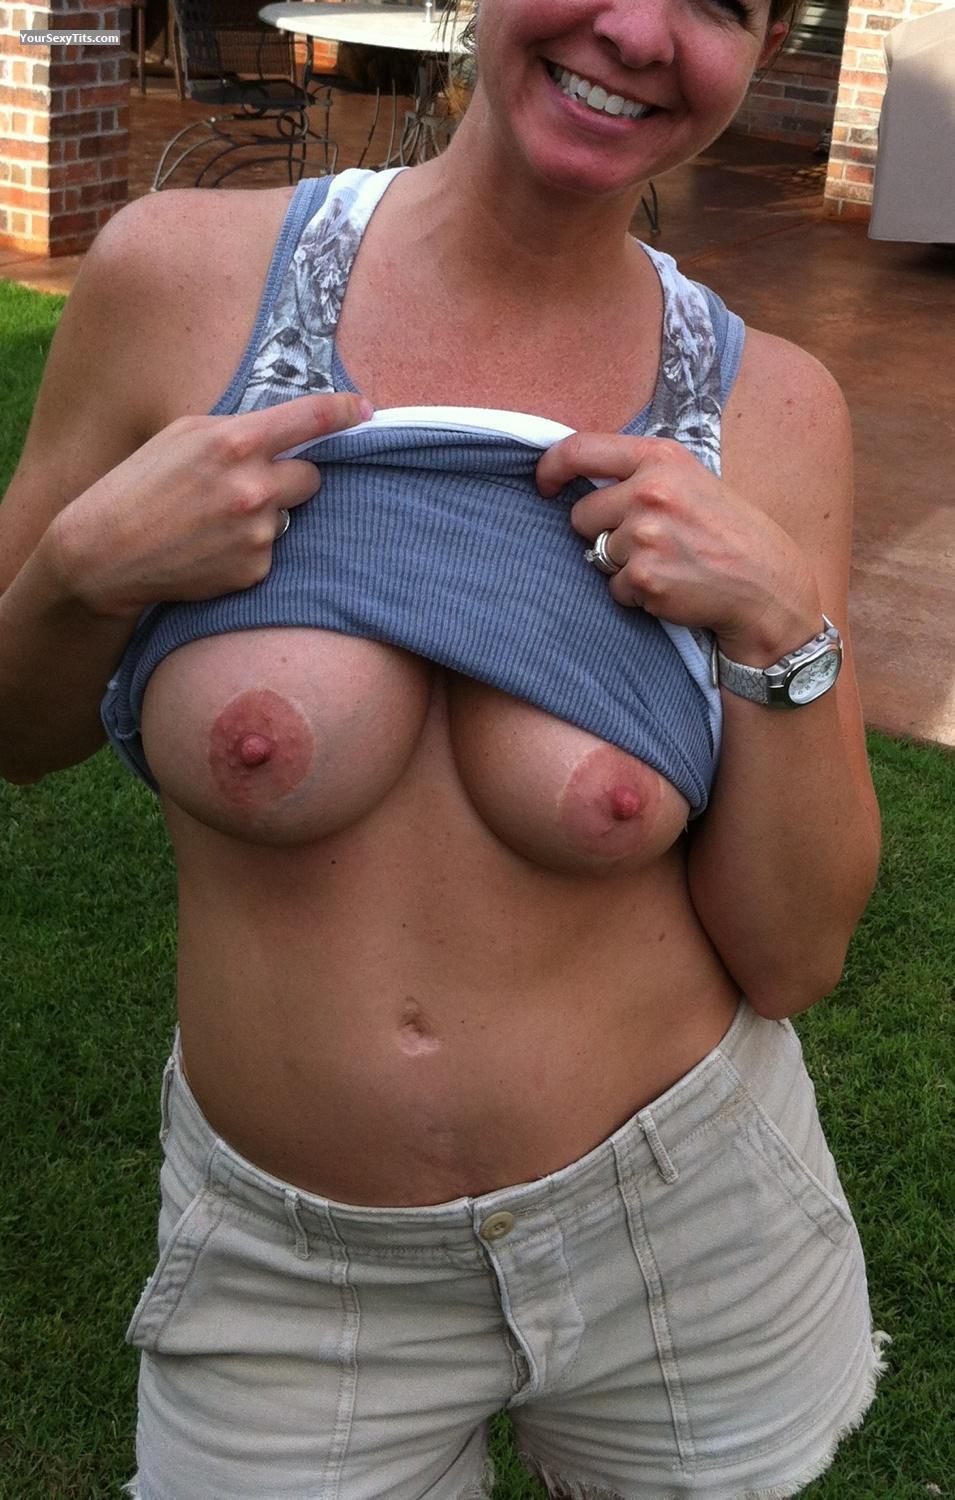 Tit Flash: Big Tits By IPhone - LAS from United States